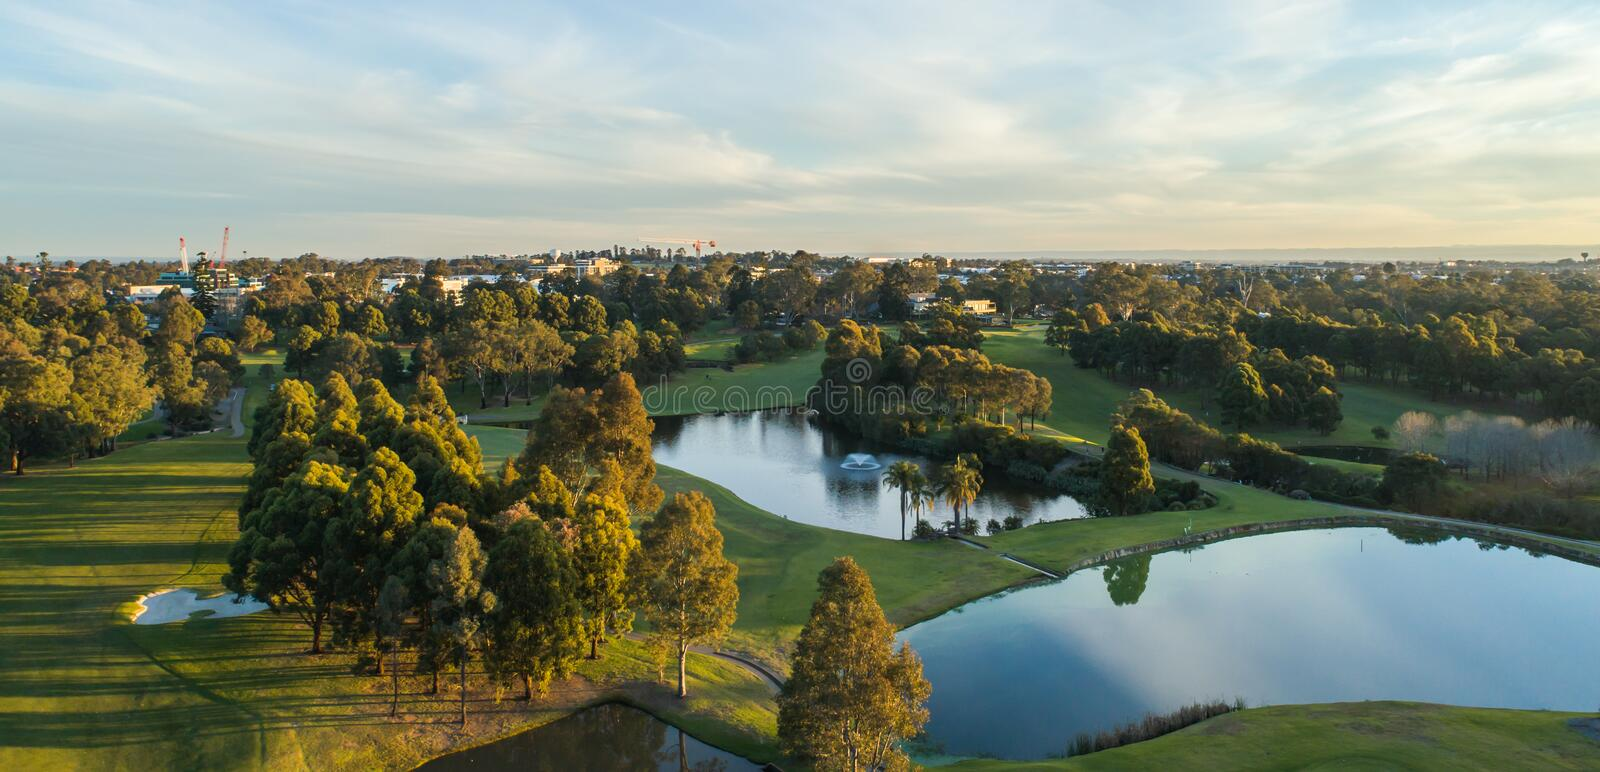 Aerial view of golf course including bunkers, dams, fairways Sydney Australia royalty free stock images